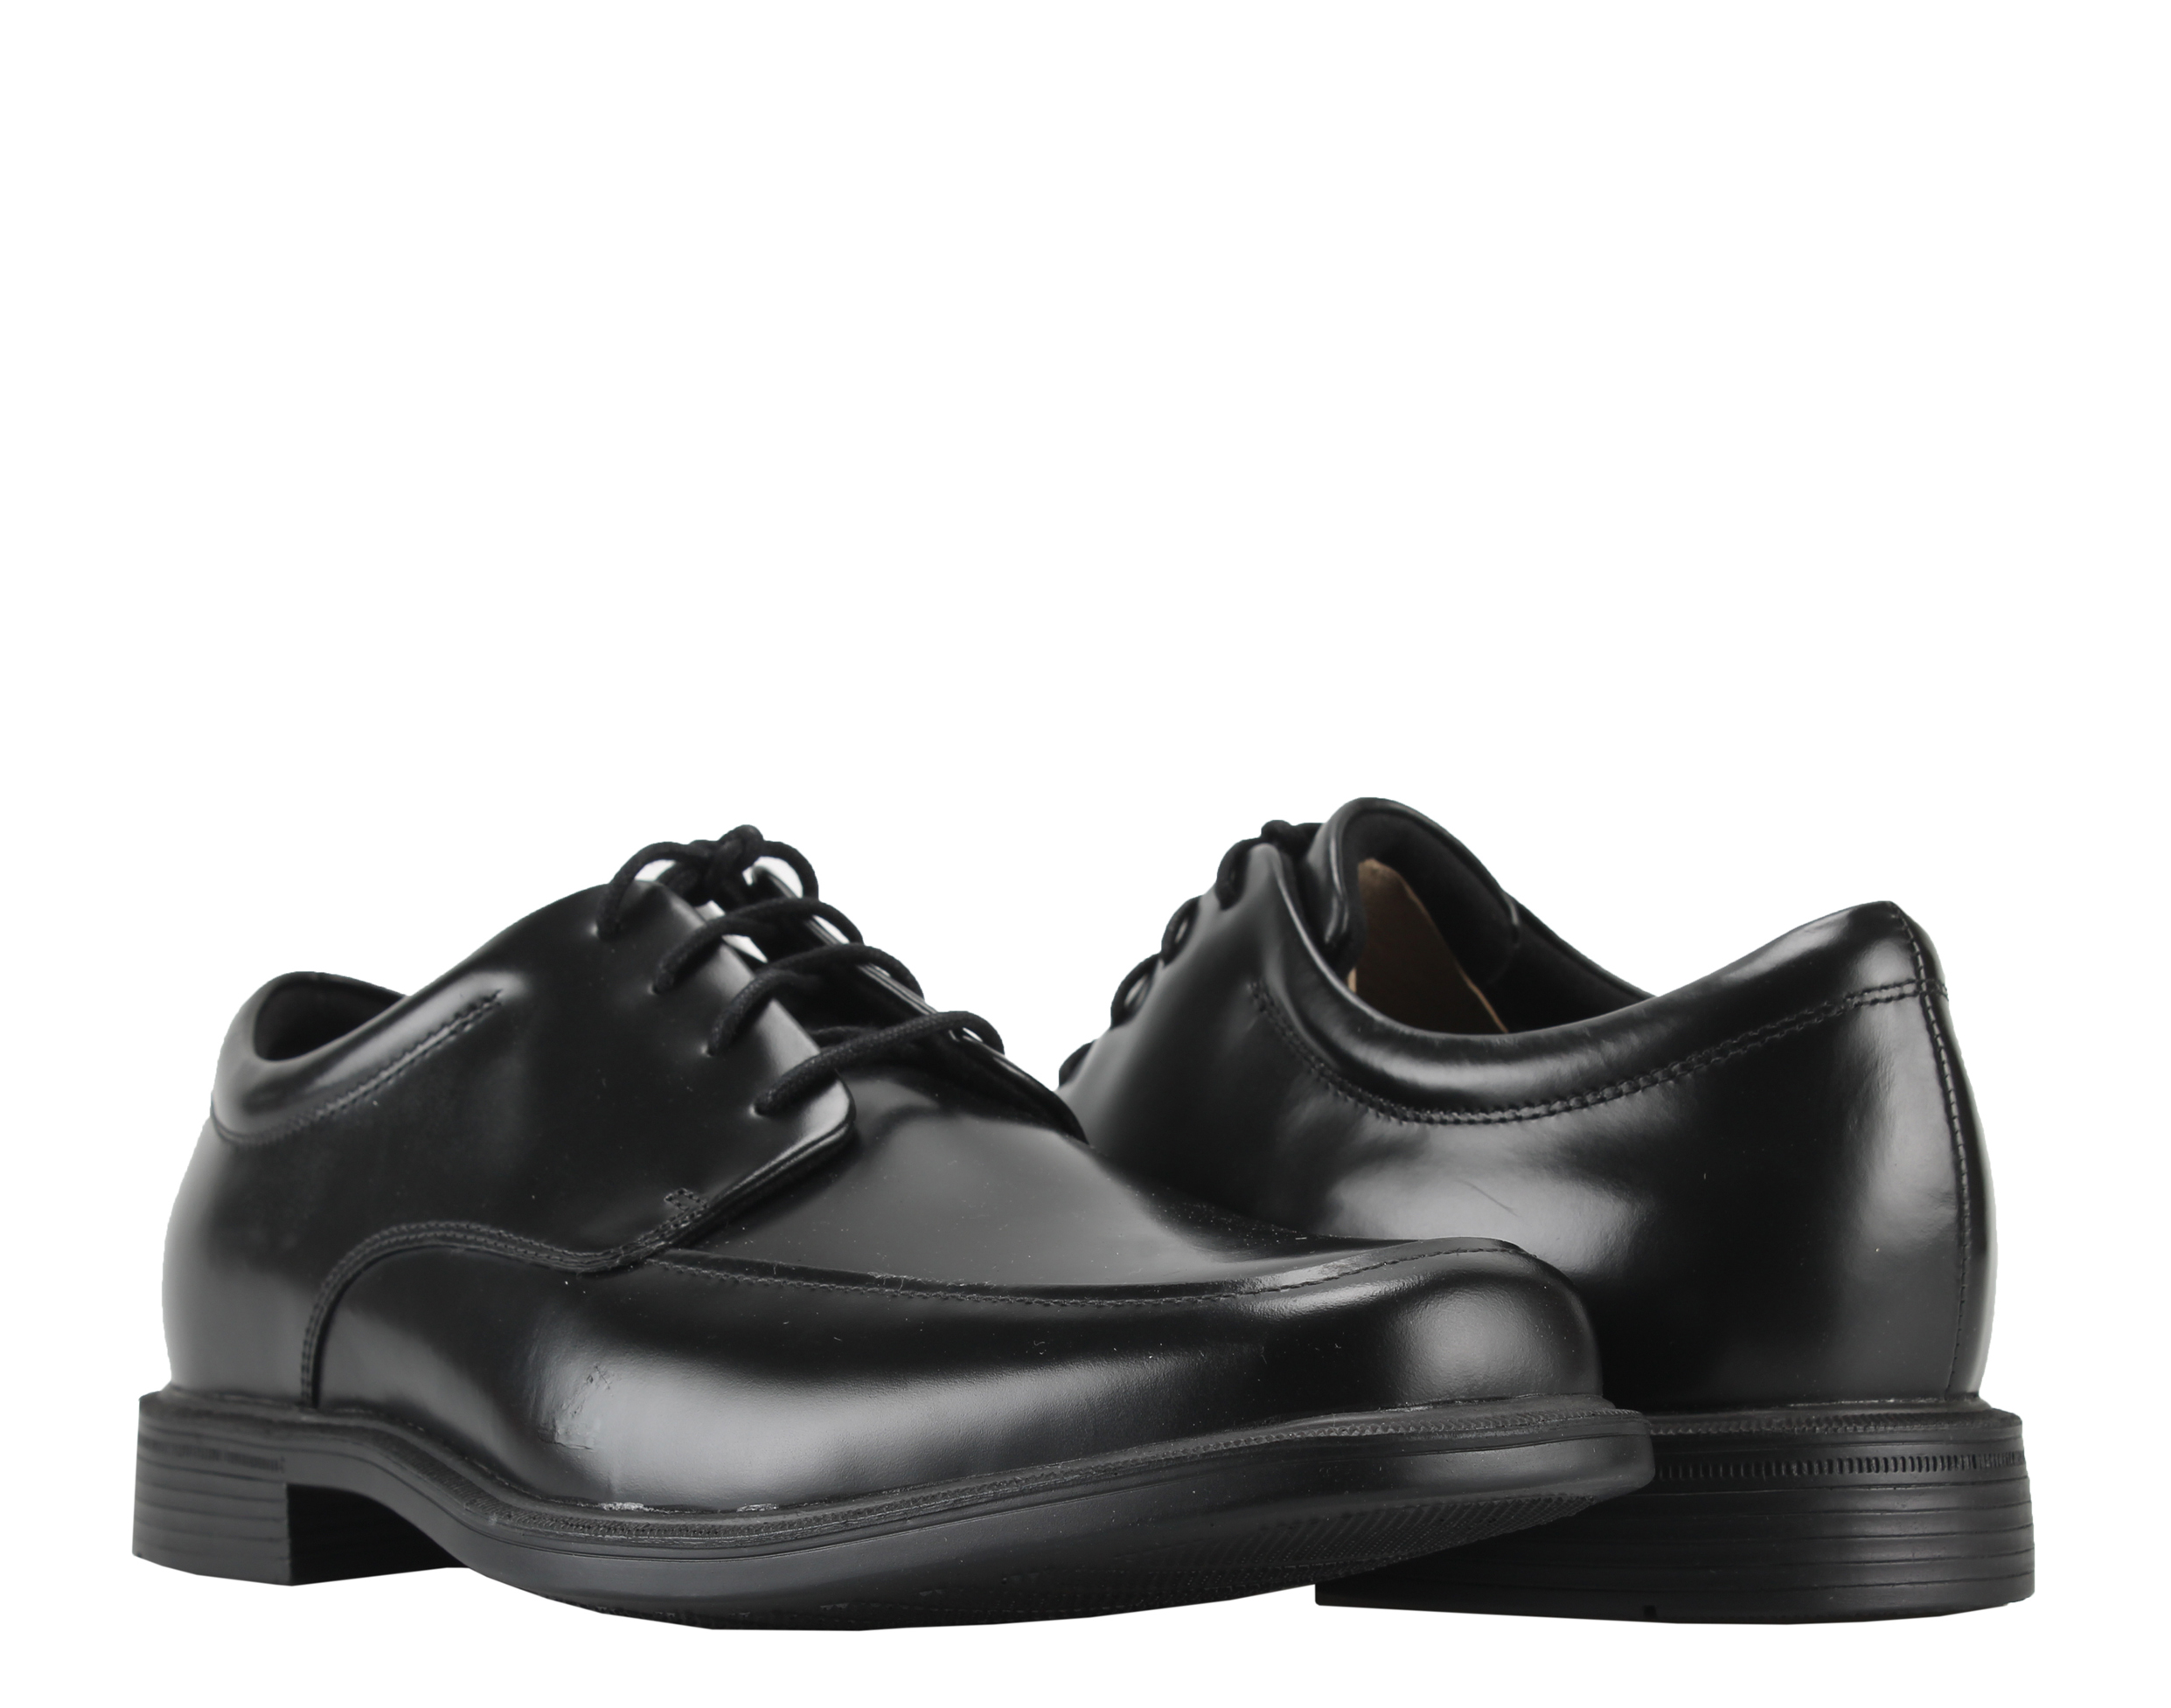 Rockport Evander Moc Toe Black Men's Dress Shoes K71057 by